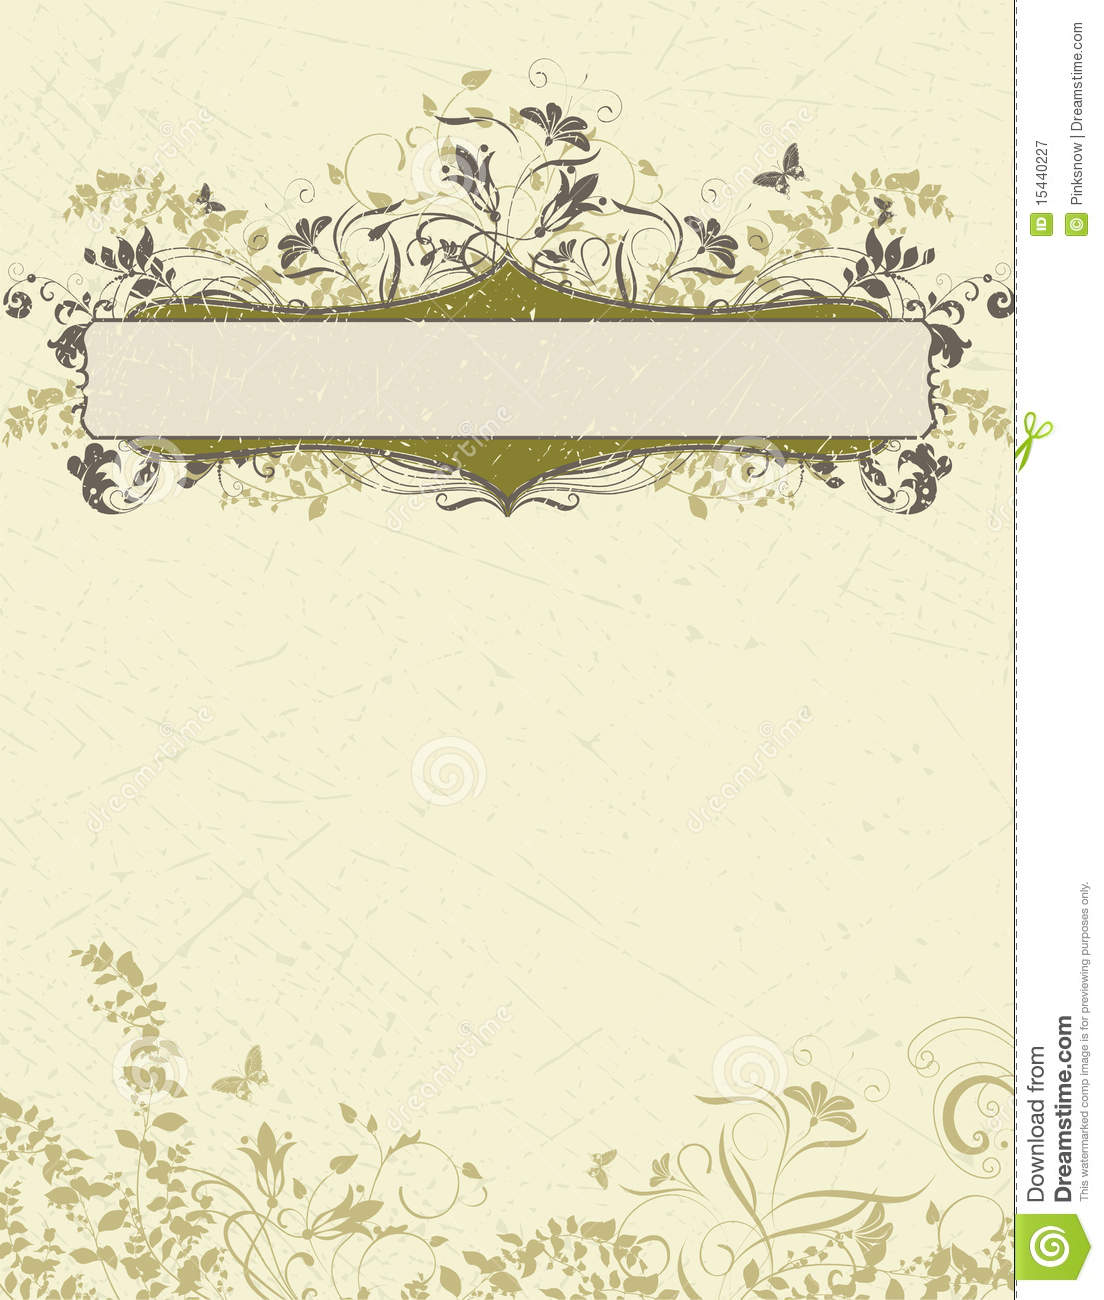 Invitation card template stock vector. Illustration of invitation